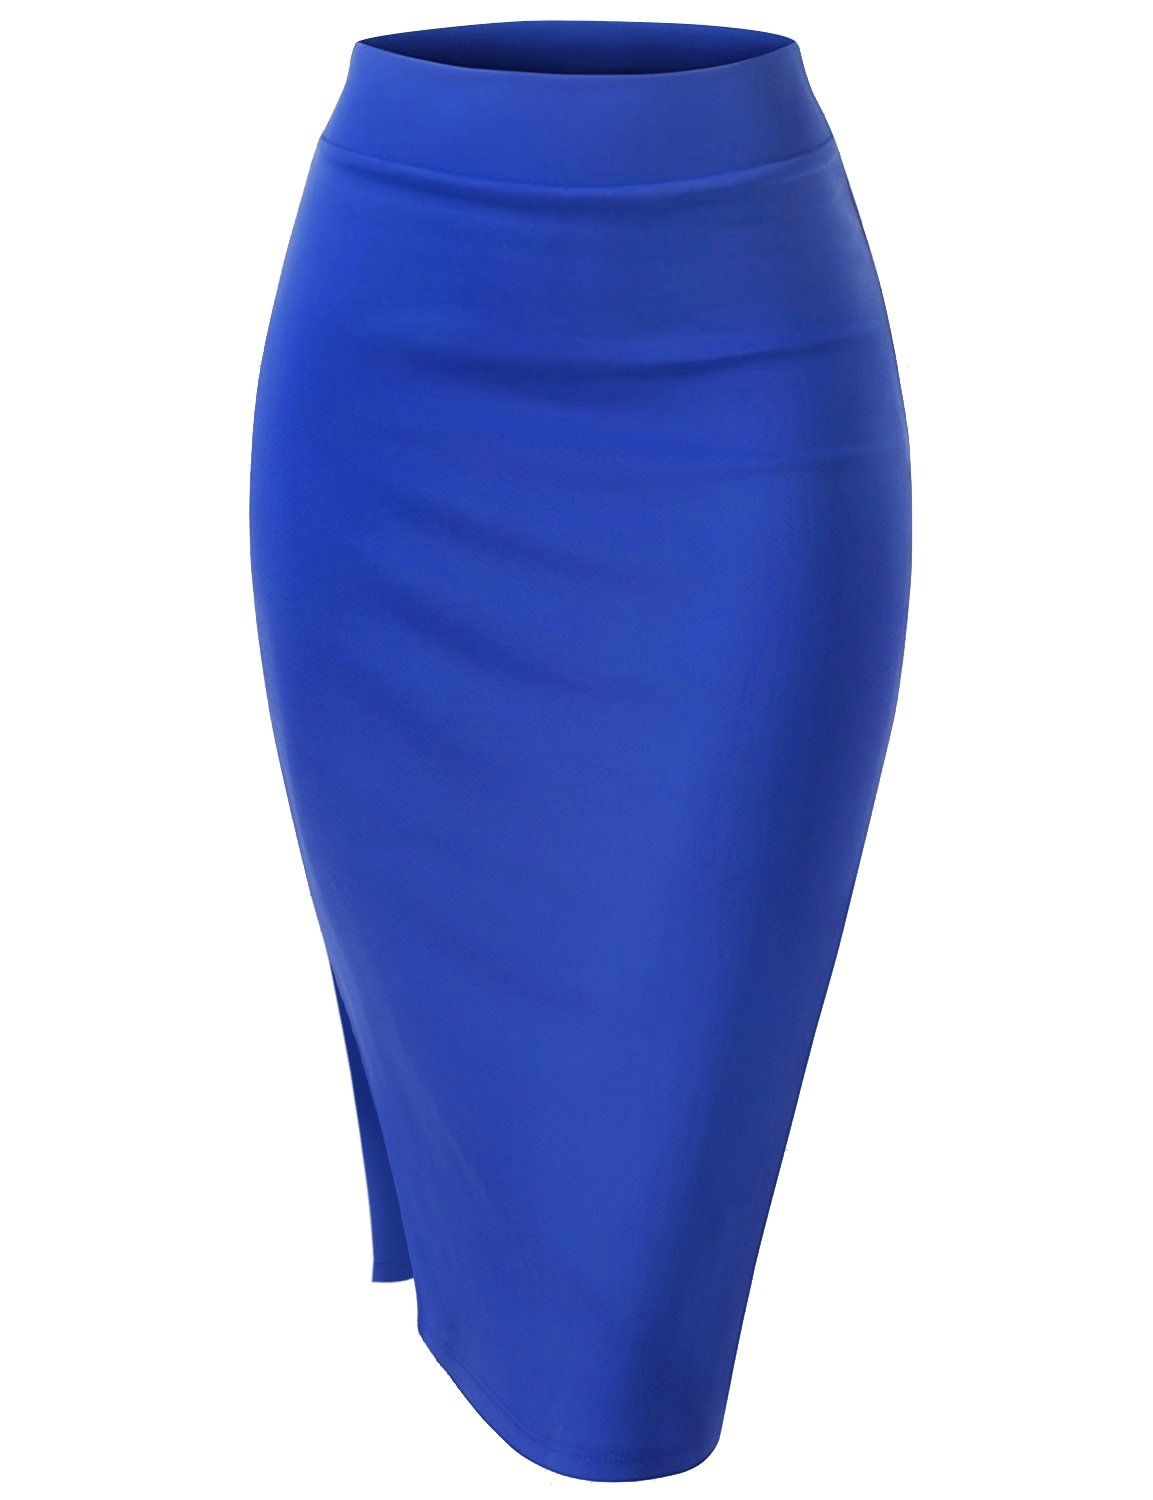 Regna X Woman's High Waist Daily Feminine Blue Large Pencil Side Slit Midi Skirt